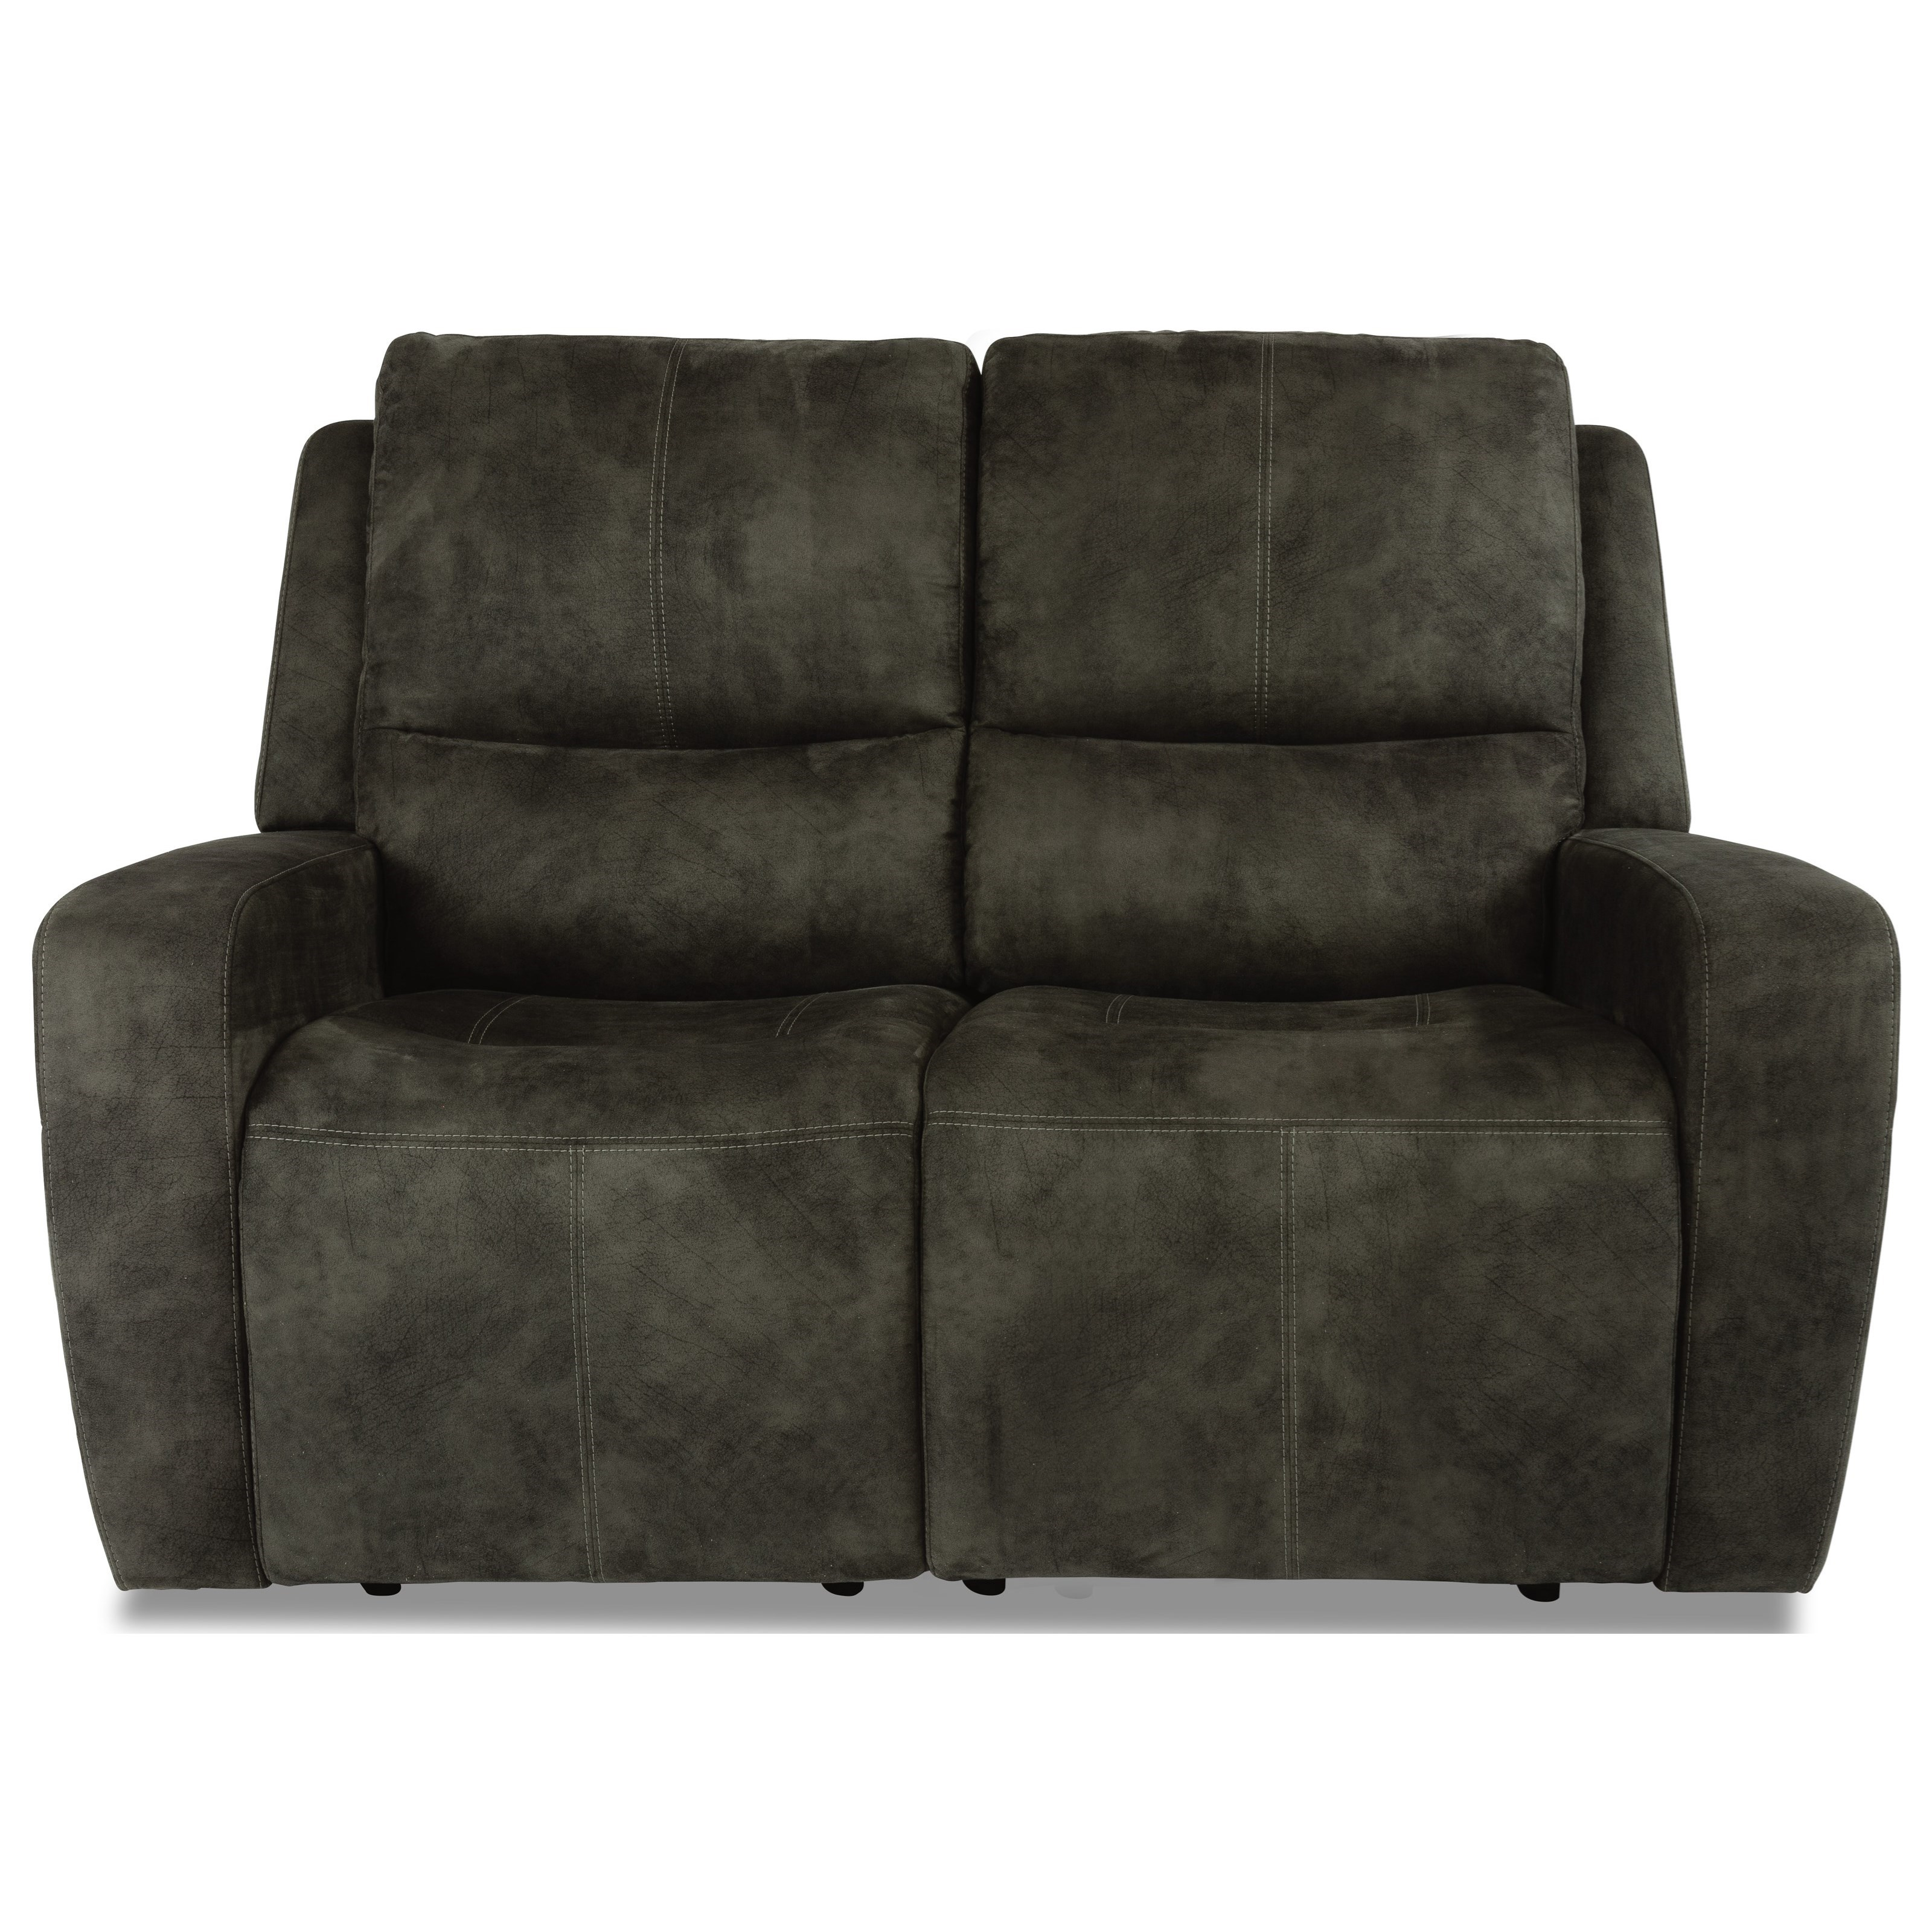 Latitudes - Aiden Power Reclining Loveseat by Flexsteel at Furniture and ApplianceMart